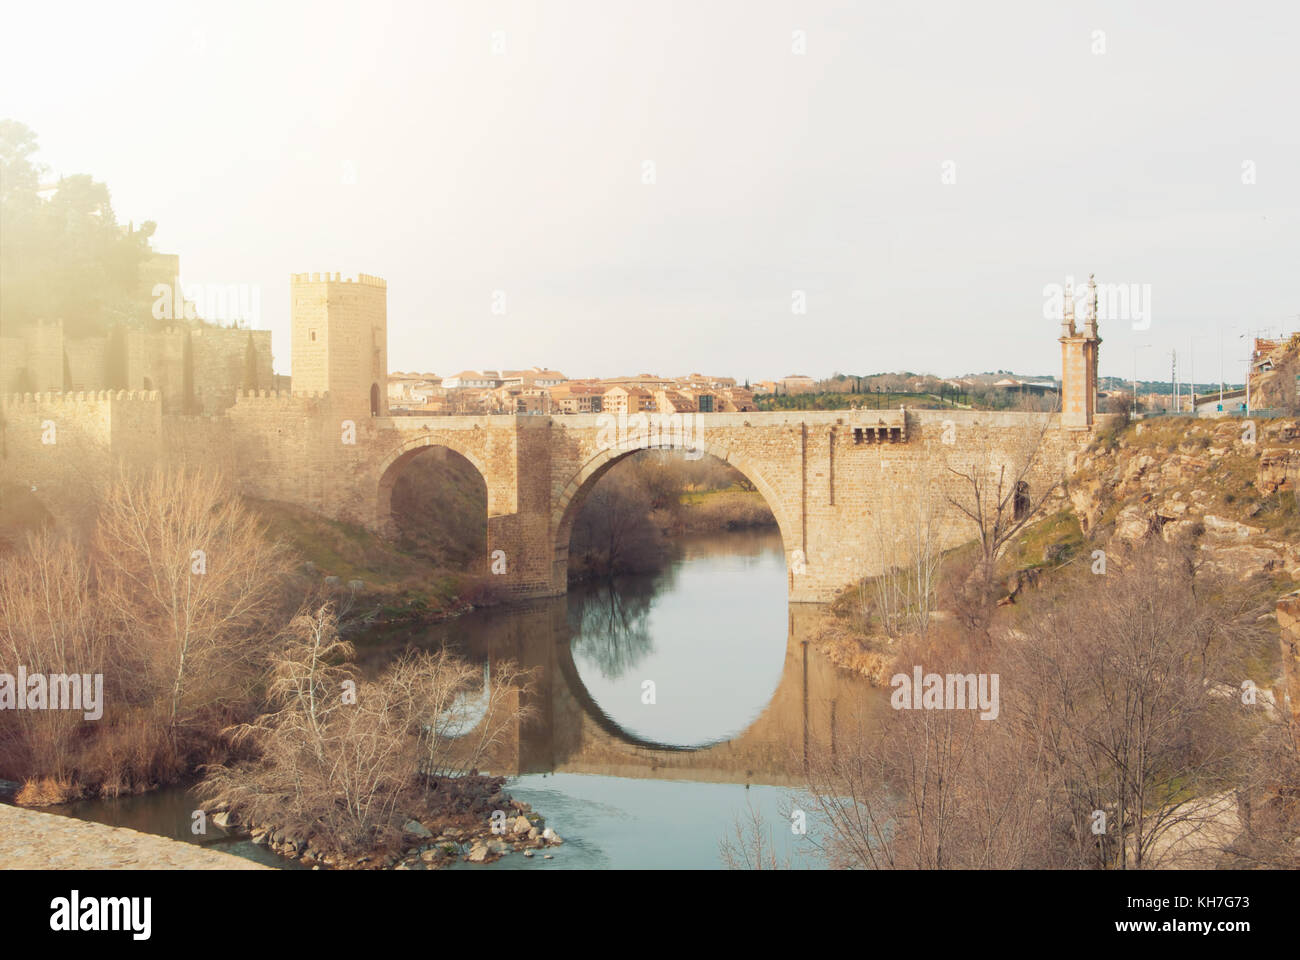 An arch Alcantara Bridge over the Tagus River and its reflection in water on winter evening day, Toledo. - Stock Image